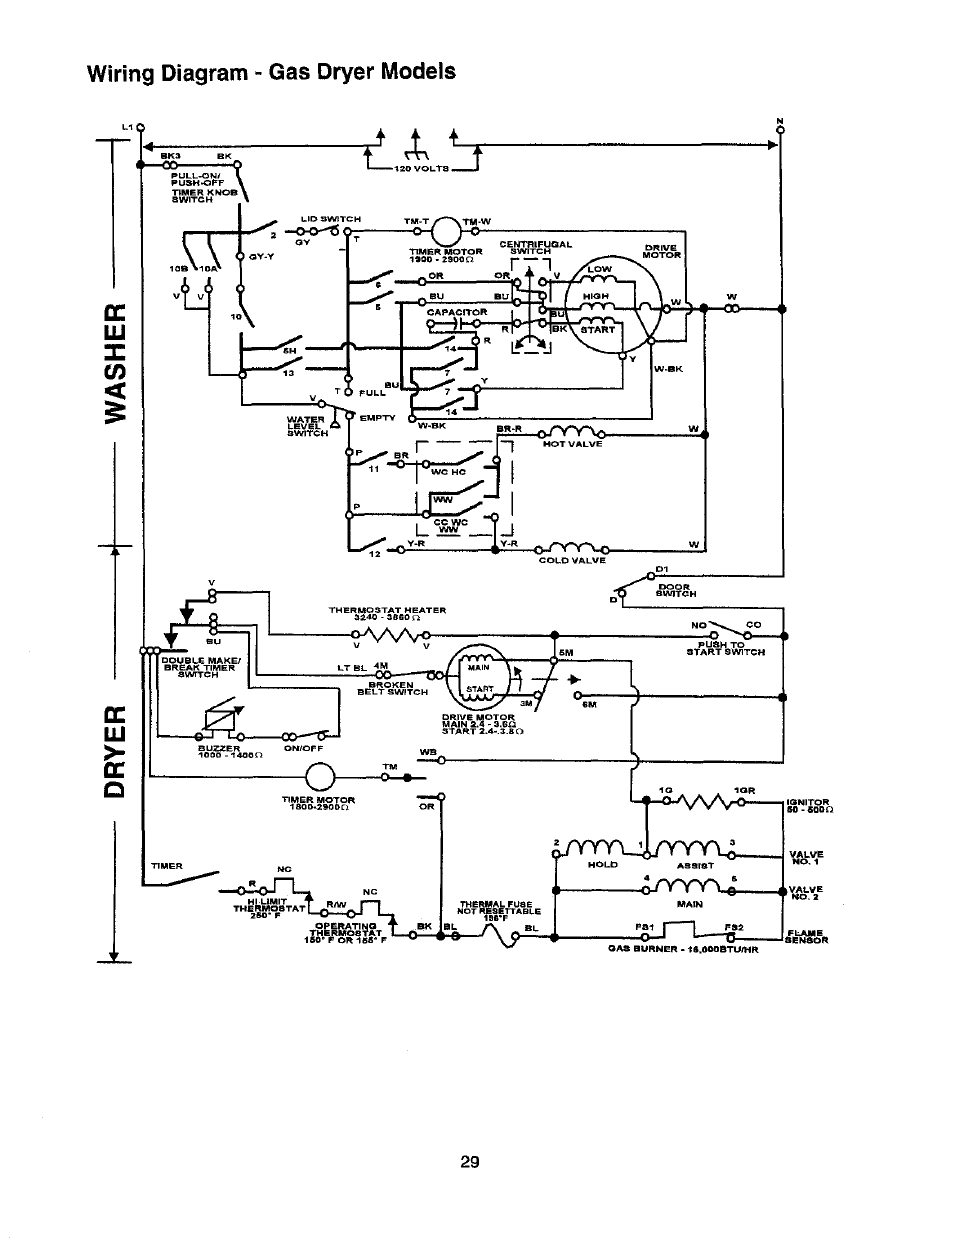 whirlpool thin twin page36 wiring diagram gas dryer models whirlpool thin twin user whirlpool thin twin wiring diagram at creativeand.co